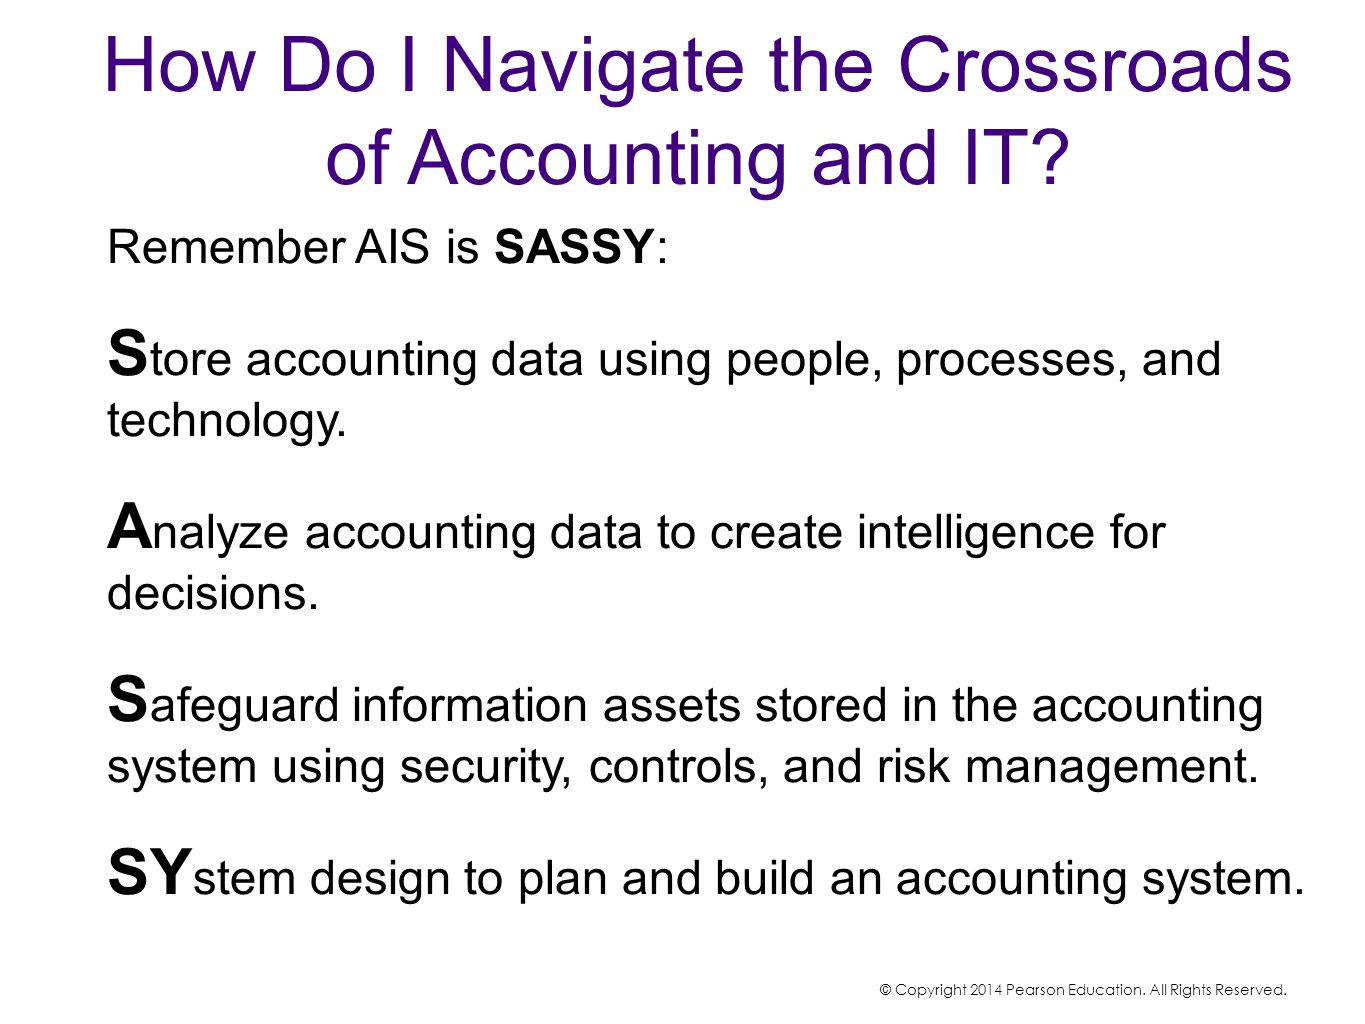 How Do I Navigate the Crossroads of Accounting and IT